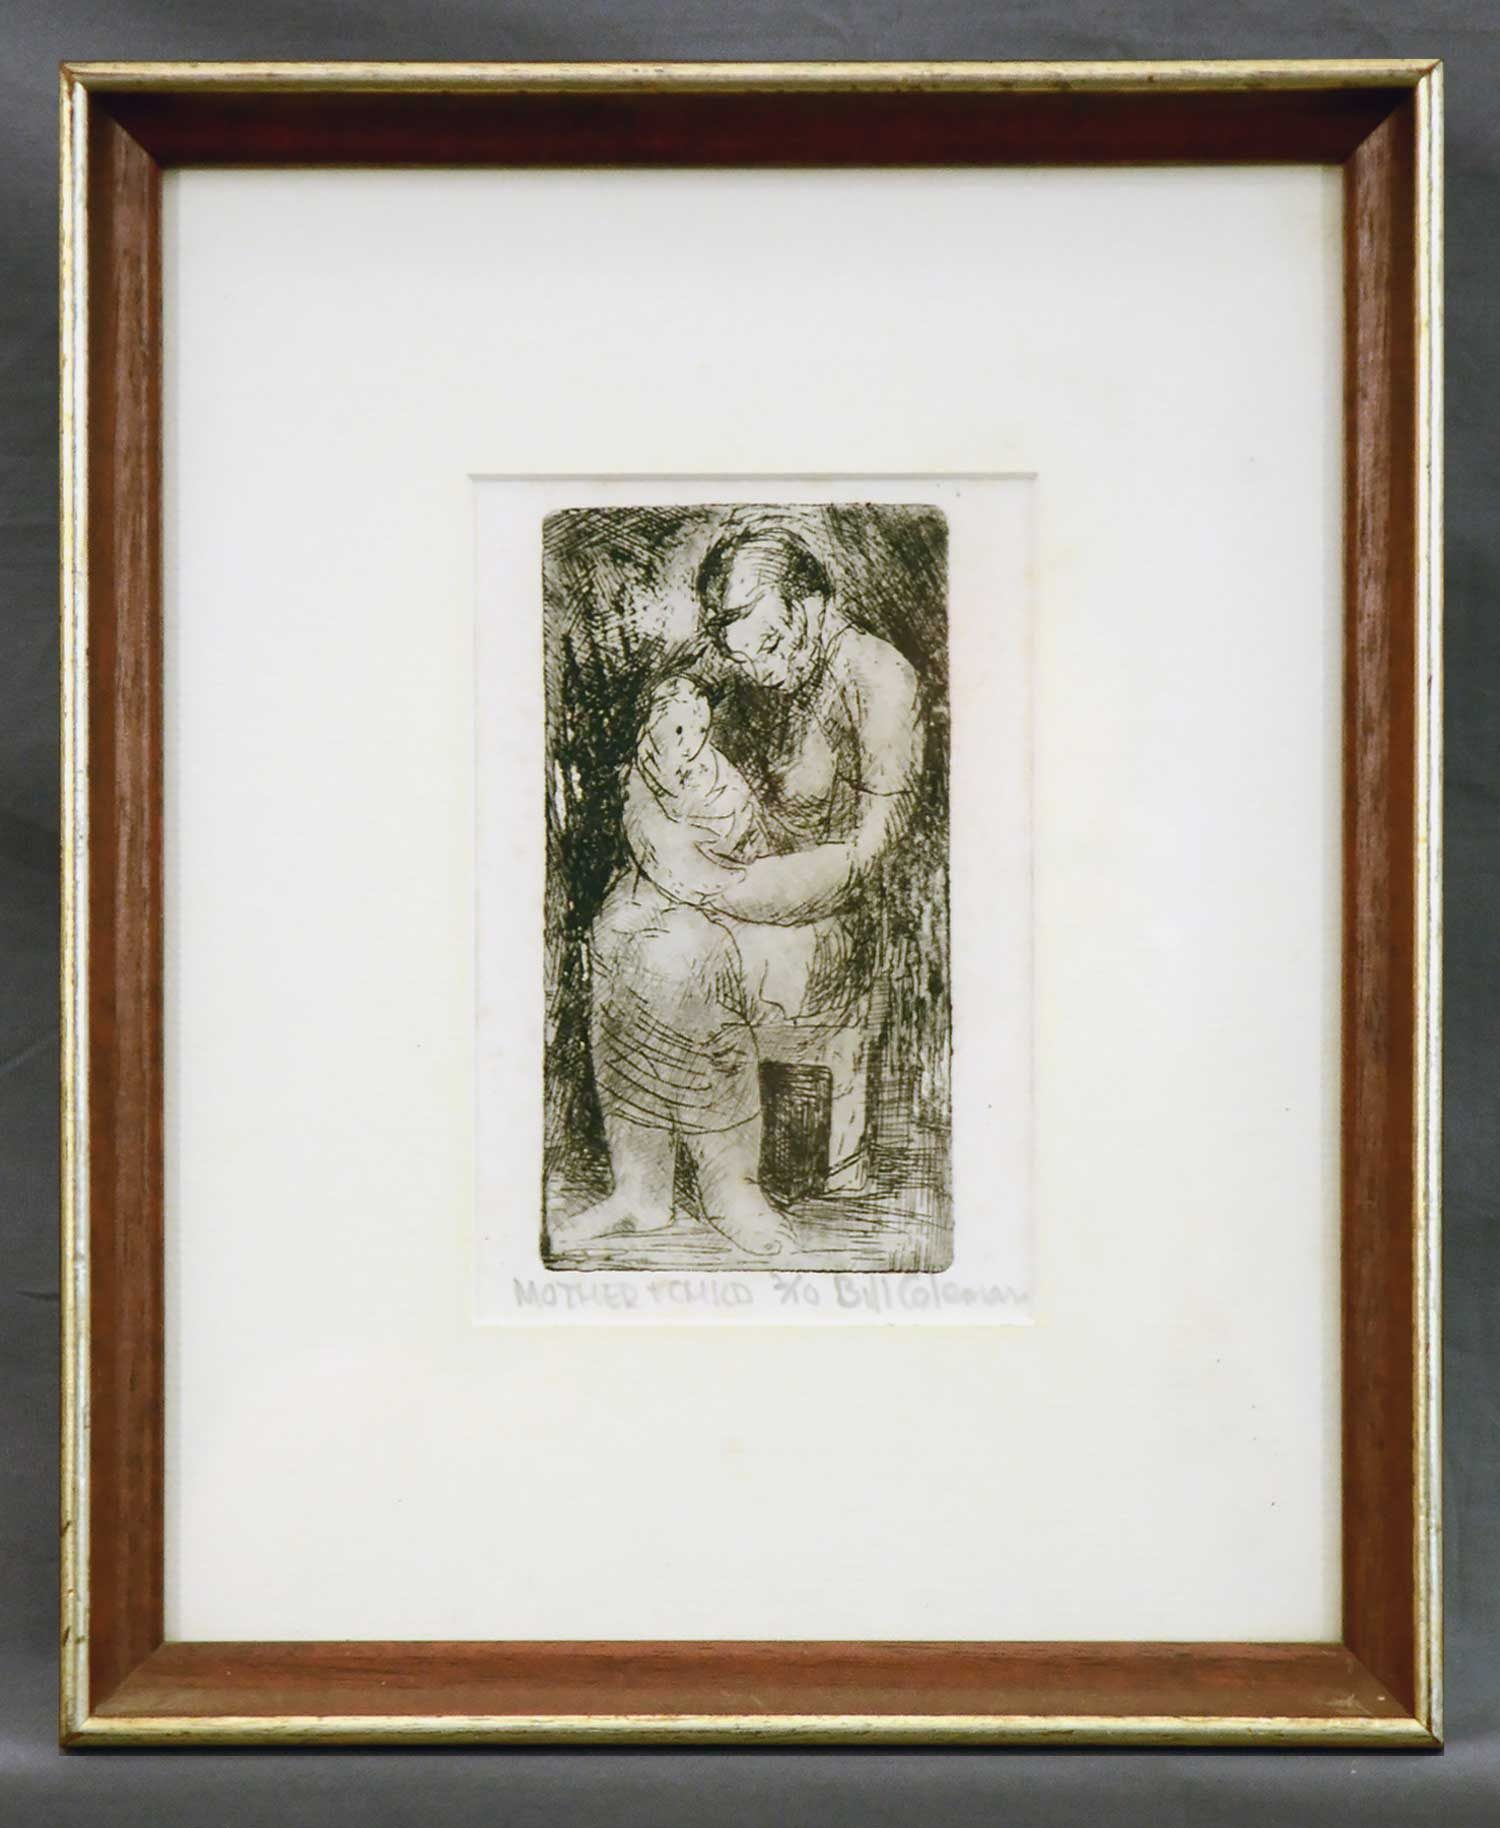 Bill Coleman Mother and Child artwork framed